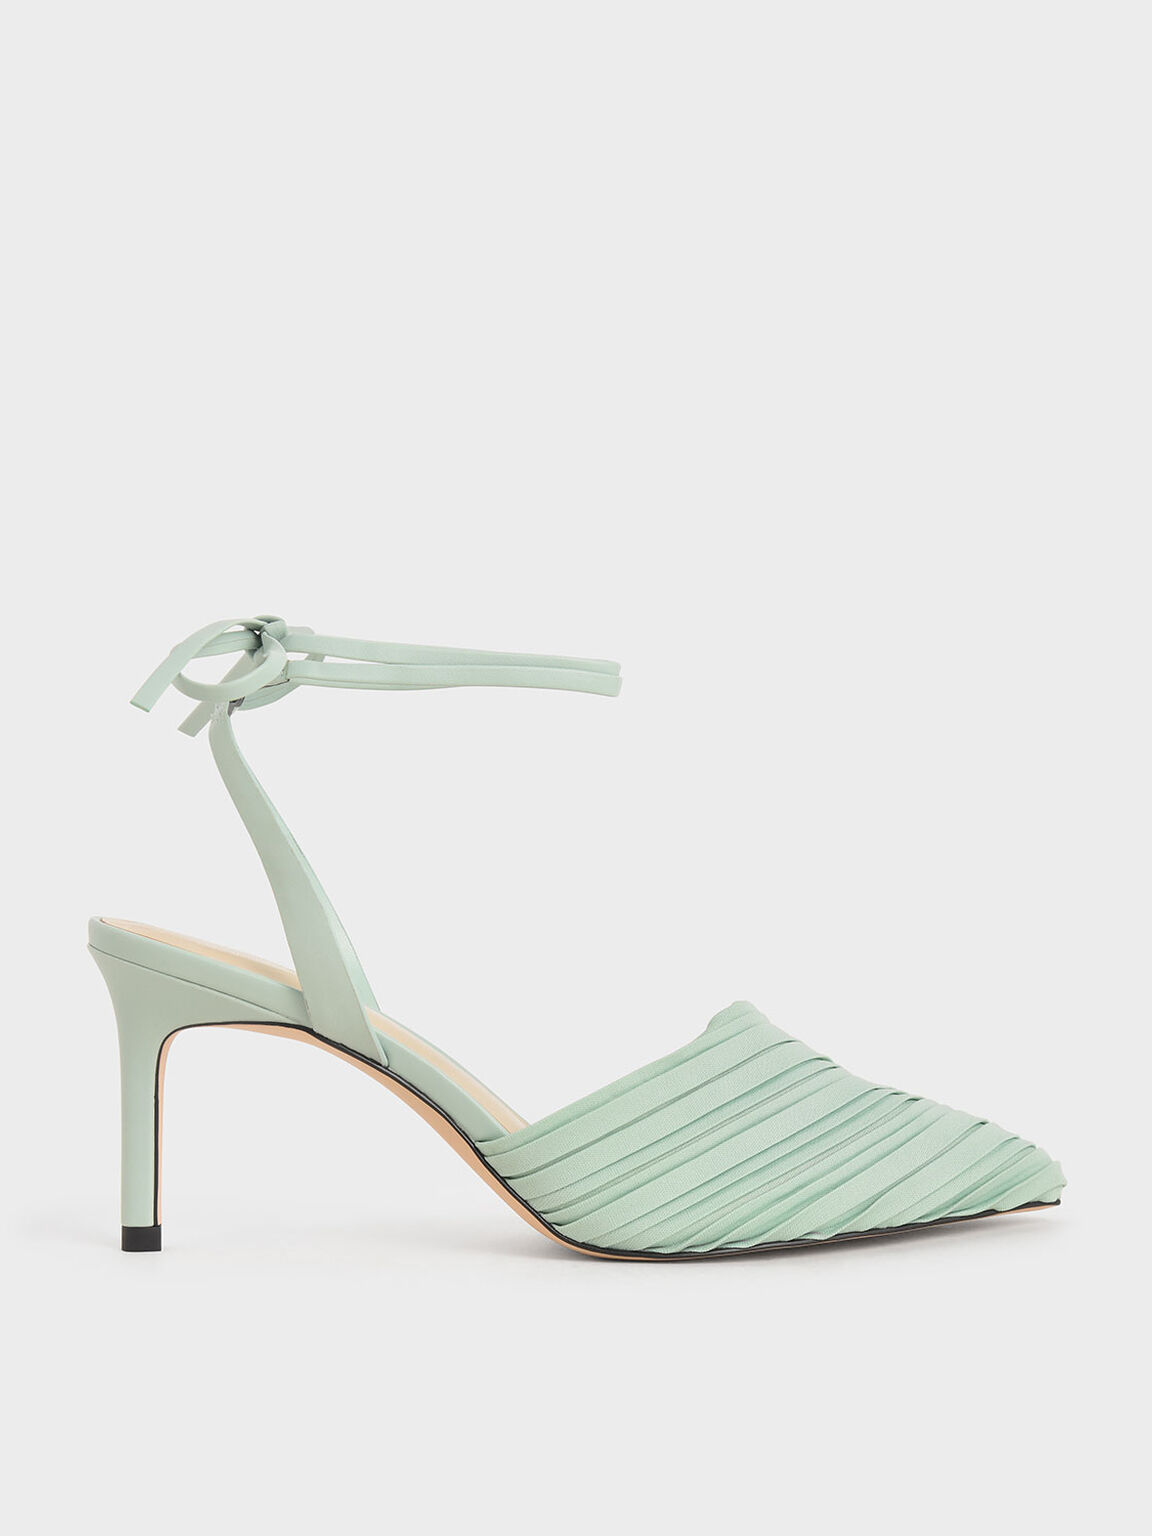 Pleated Ankle-Tie Stiletto Pumps, Mint Green, hi-res